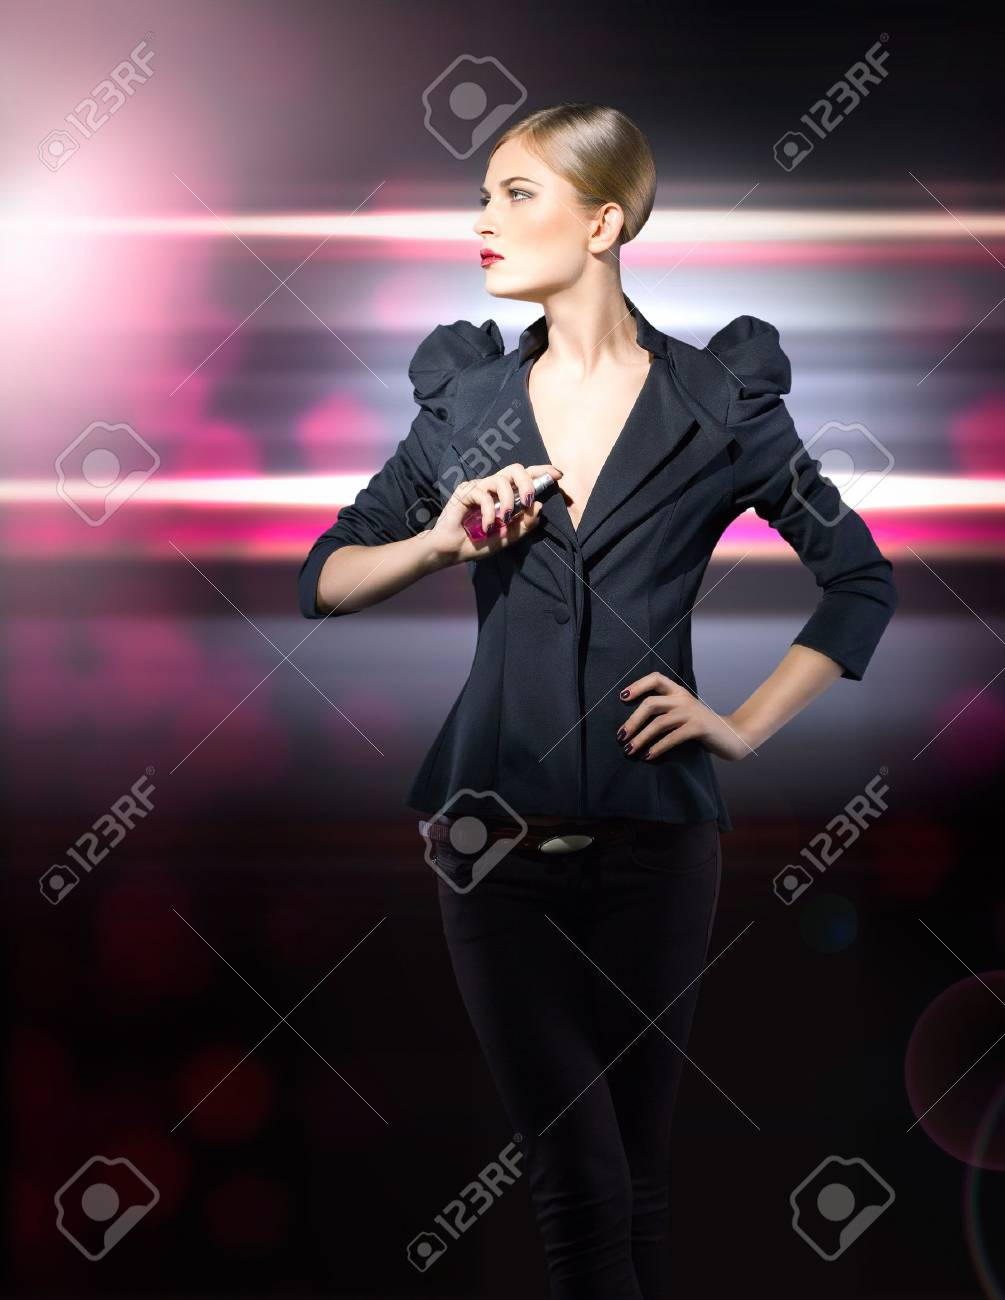 glamorous girl in a black jacket with a bottle of perfume in her Stock Photo - 12195715